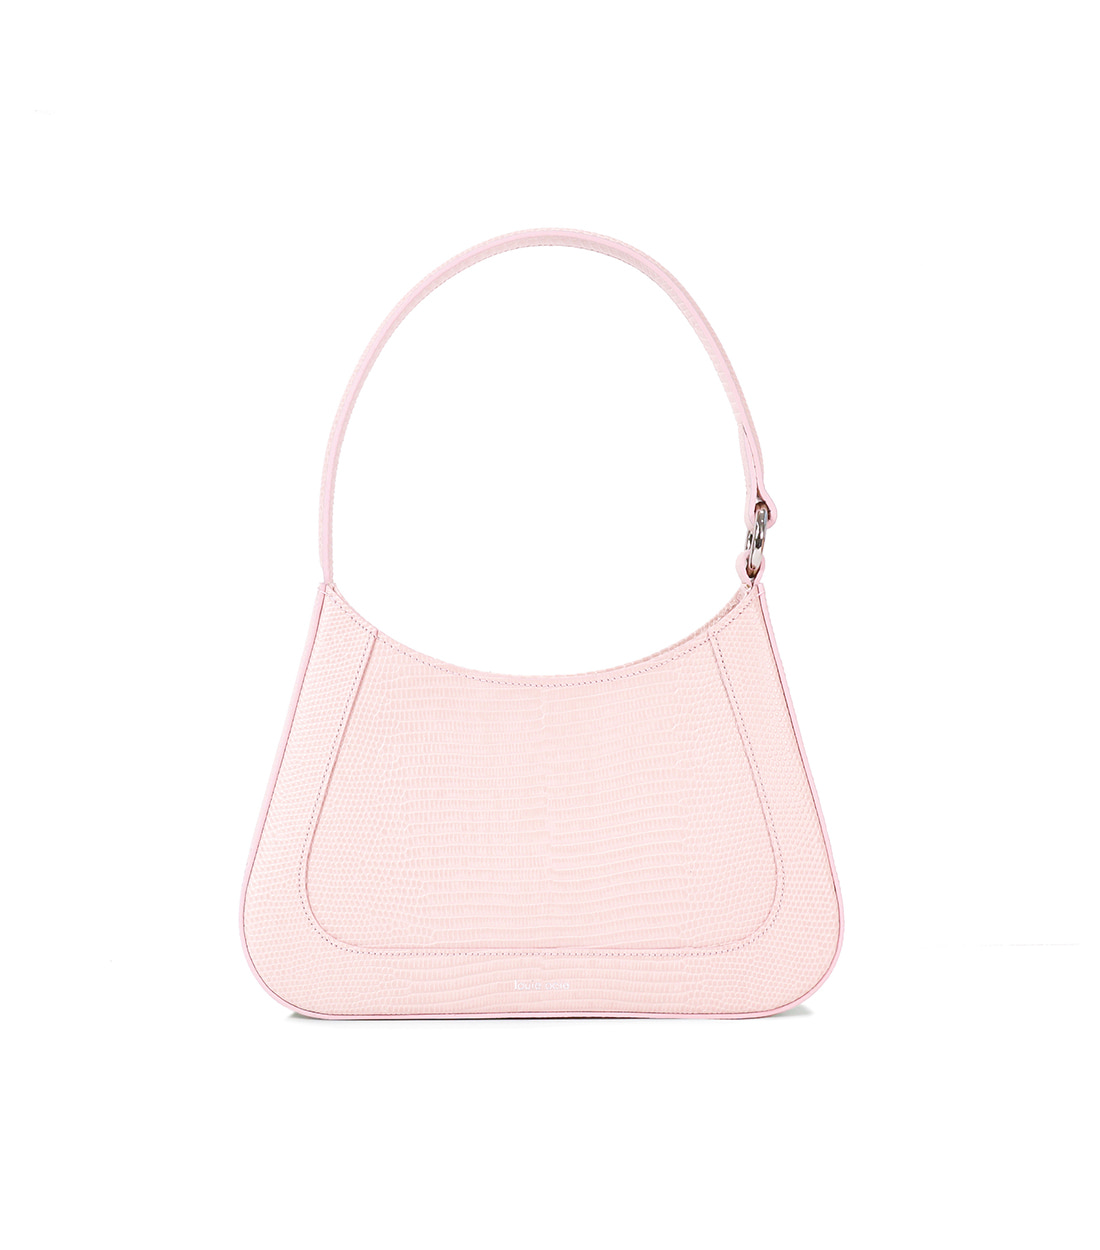 julie bag - pink embo